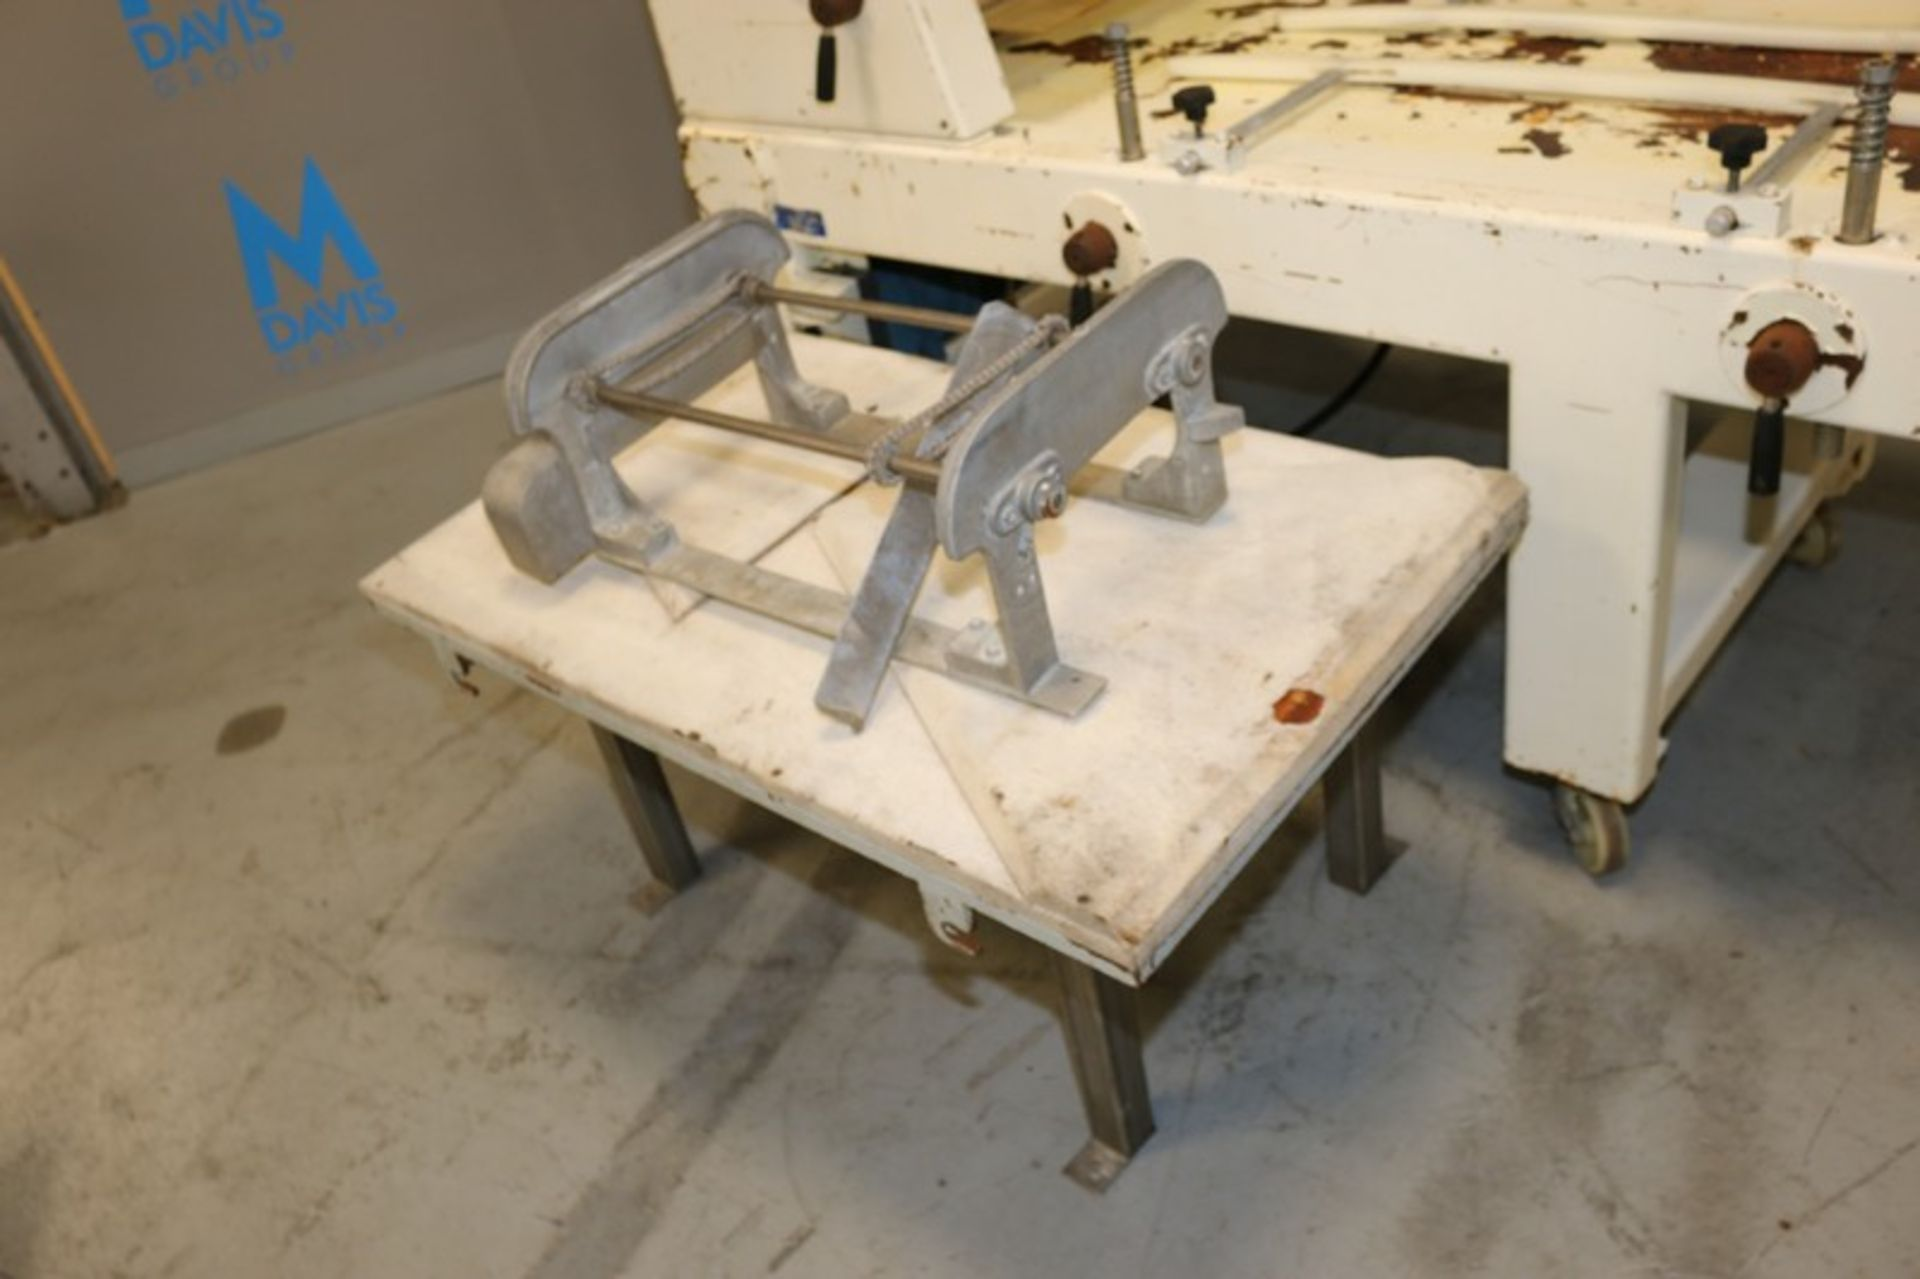 Lot 271 - Adams Equipment Corp. Double Extruder, M/N LR-67,